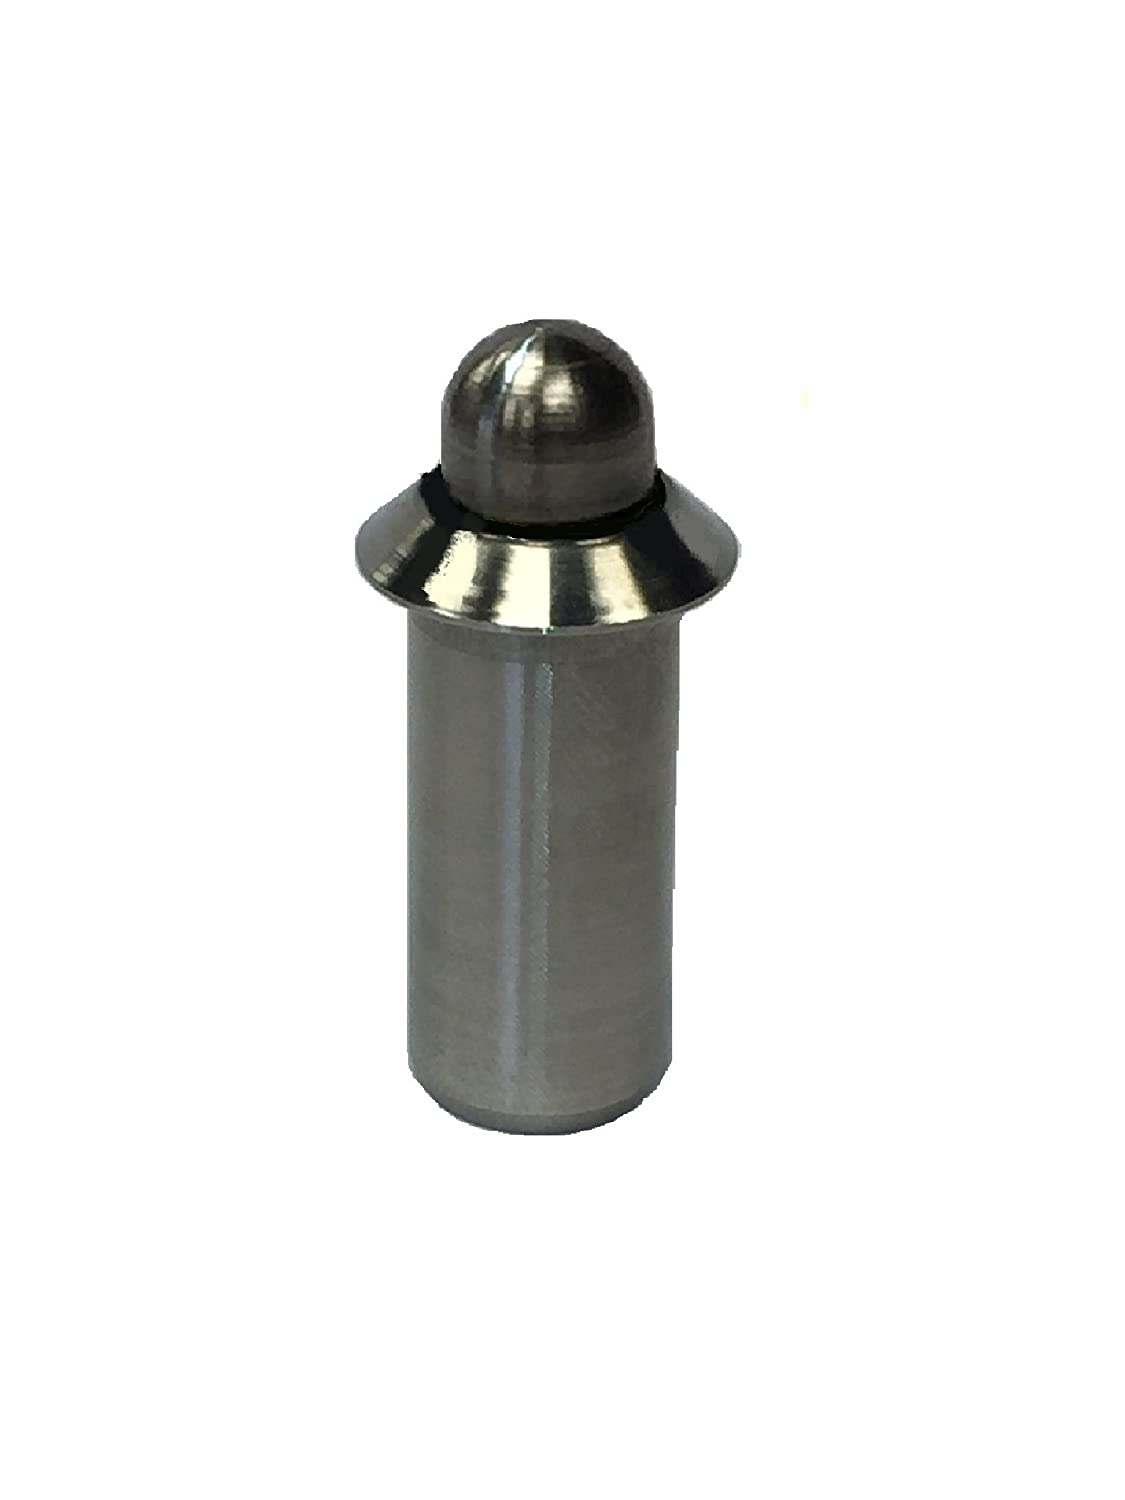 Ball /& Spring Plunger SSWPF10-4 Press Fit Round Nose Plunger Standard End Force S/&W Manufacturing Co Inc.